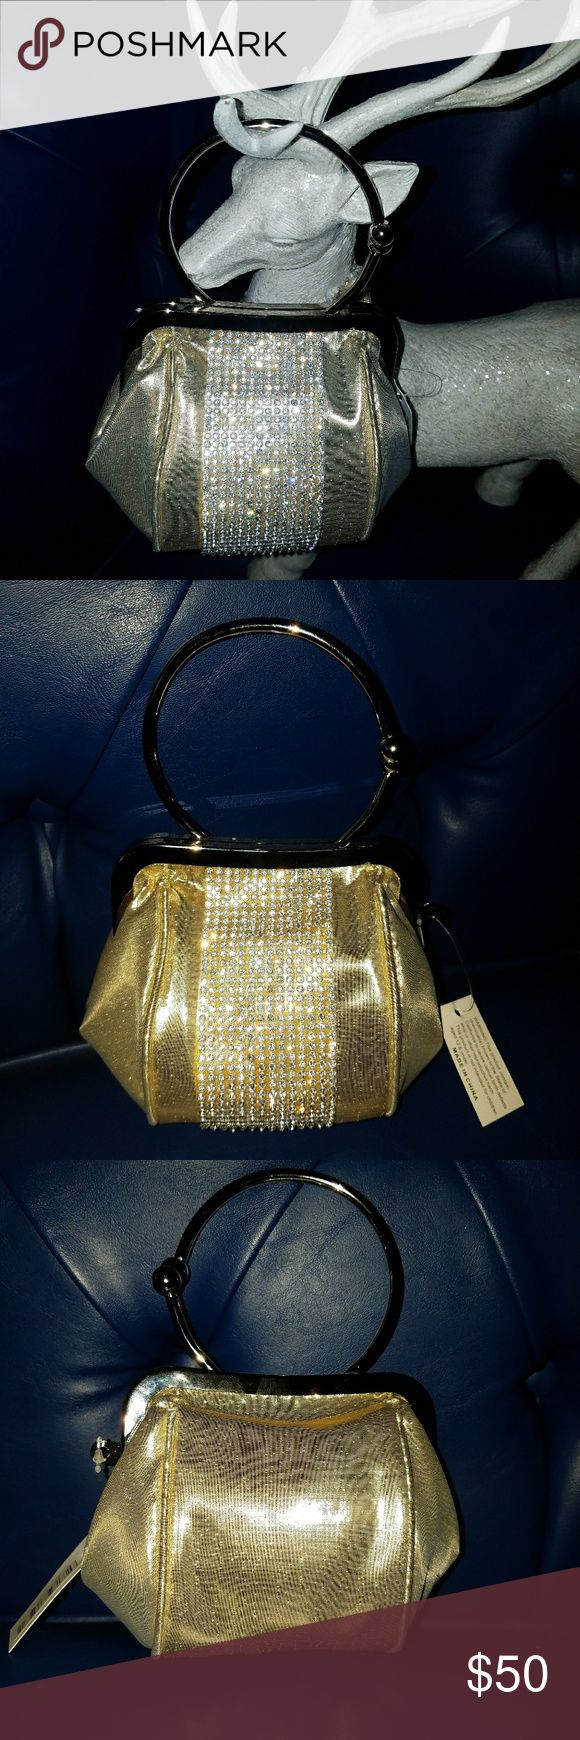 Mini night out purse  Free Gift with purchase Brand New  Free gift with purchase  1.Estee Lauder make up clutch  4.Elizabeth Arden lip gloss Bags Mini Bags